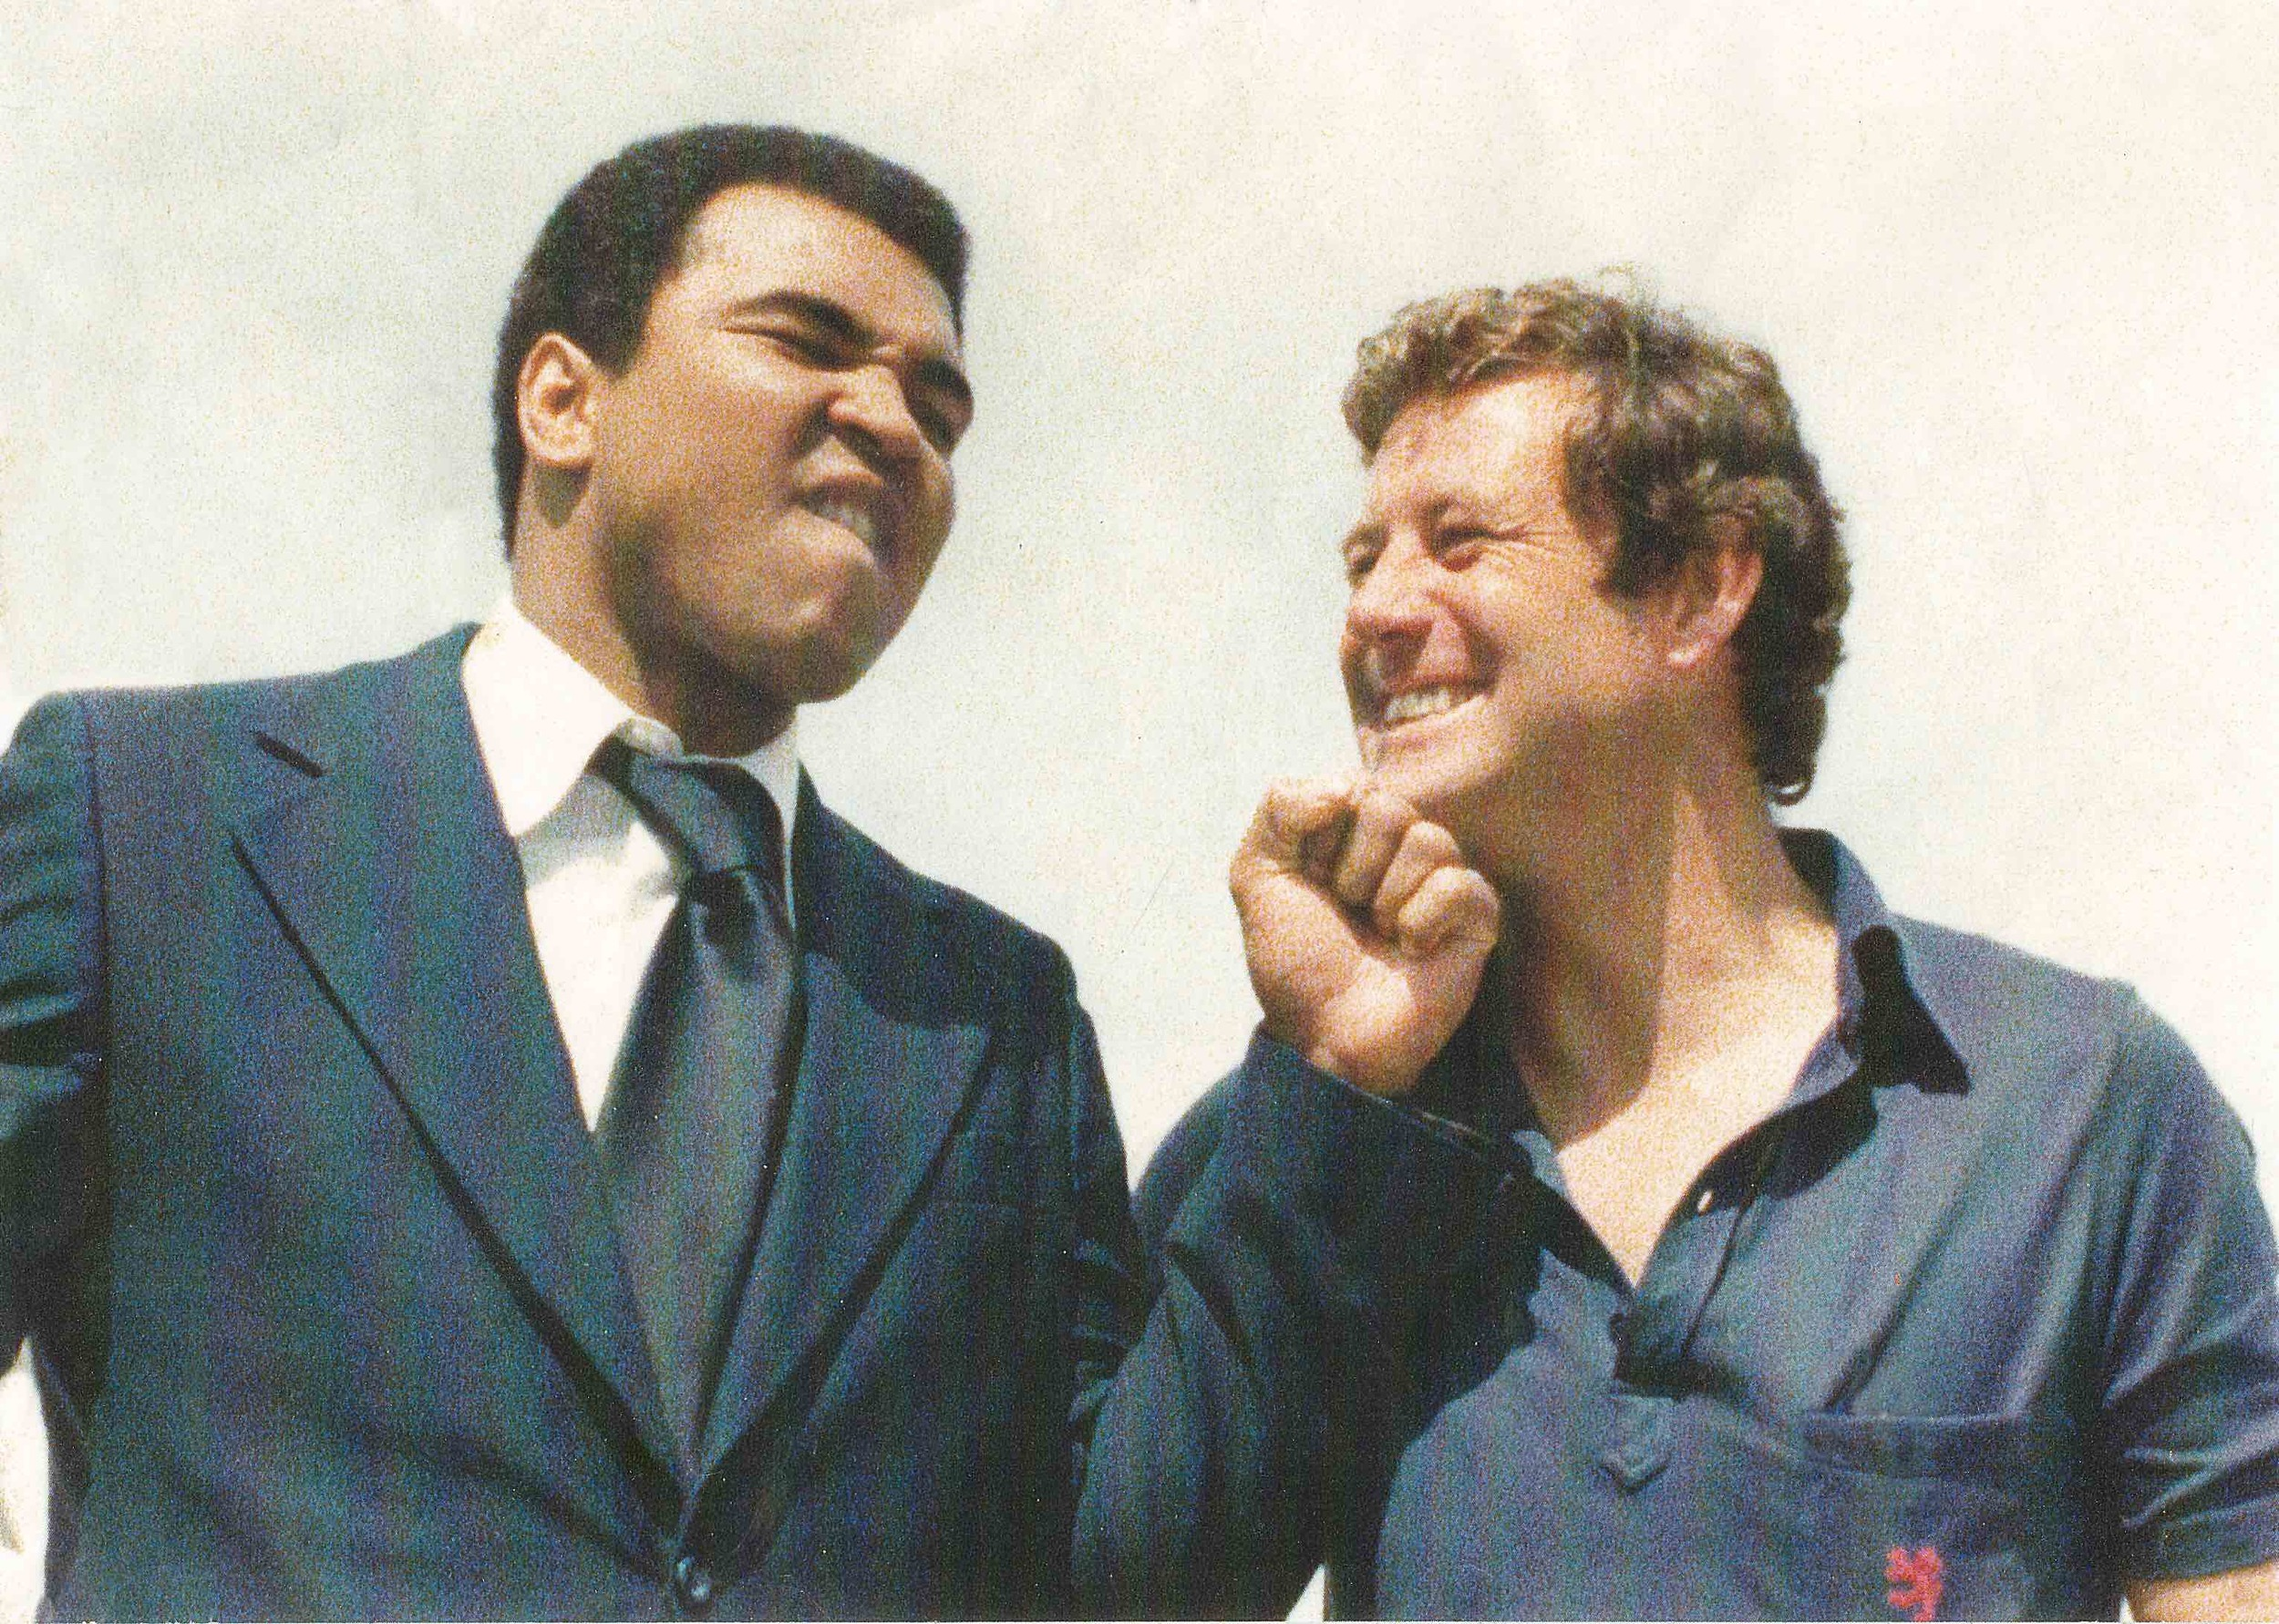 Muhammad Ali with Peter Montgomery after Peter's historic interview with him